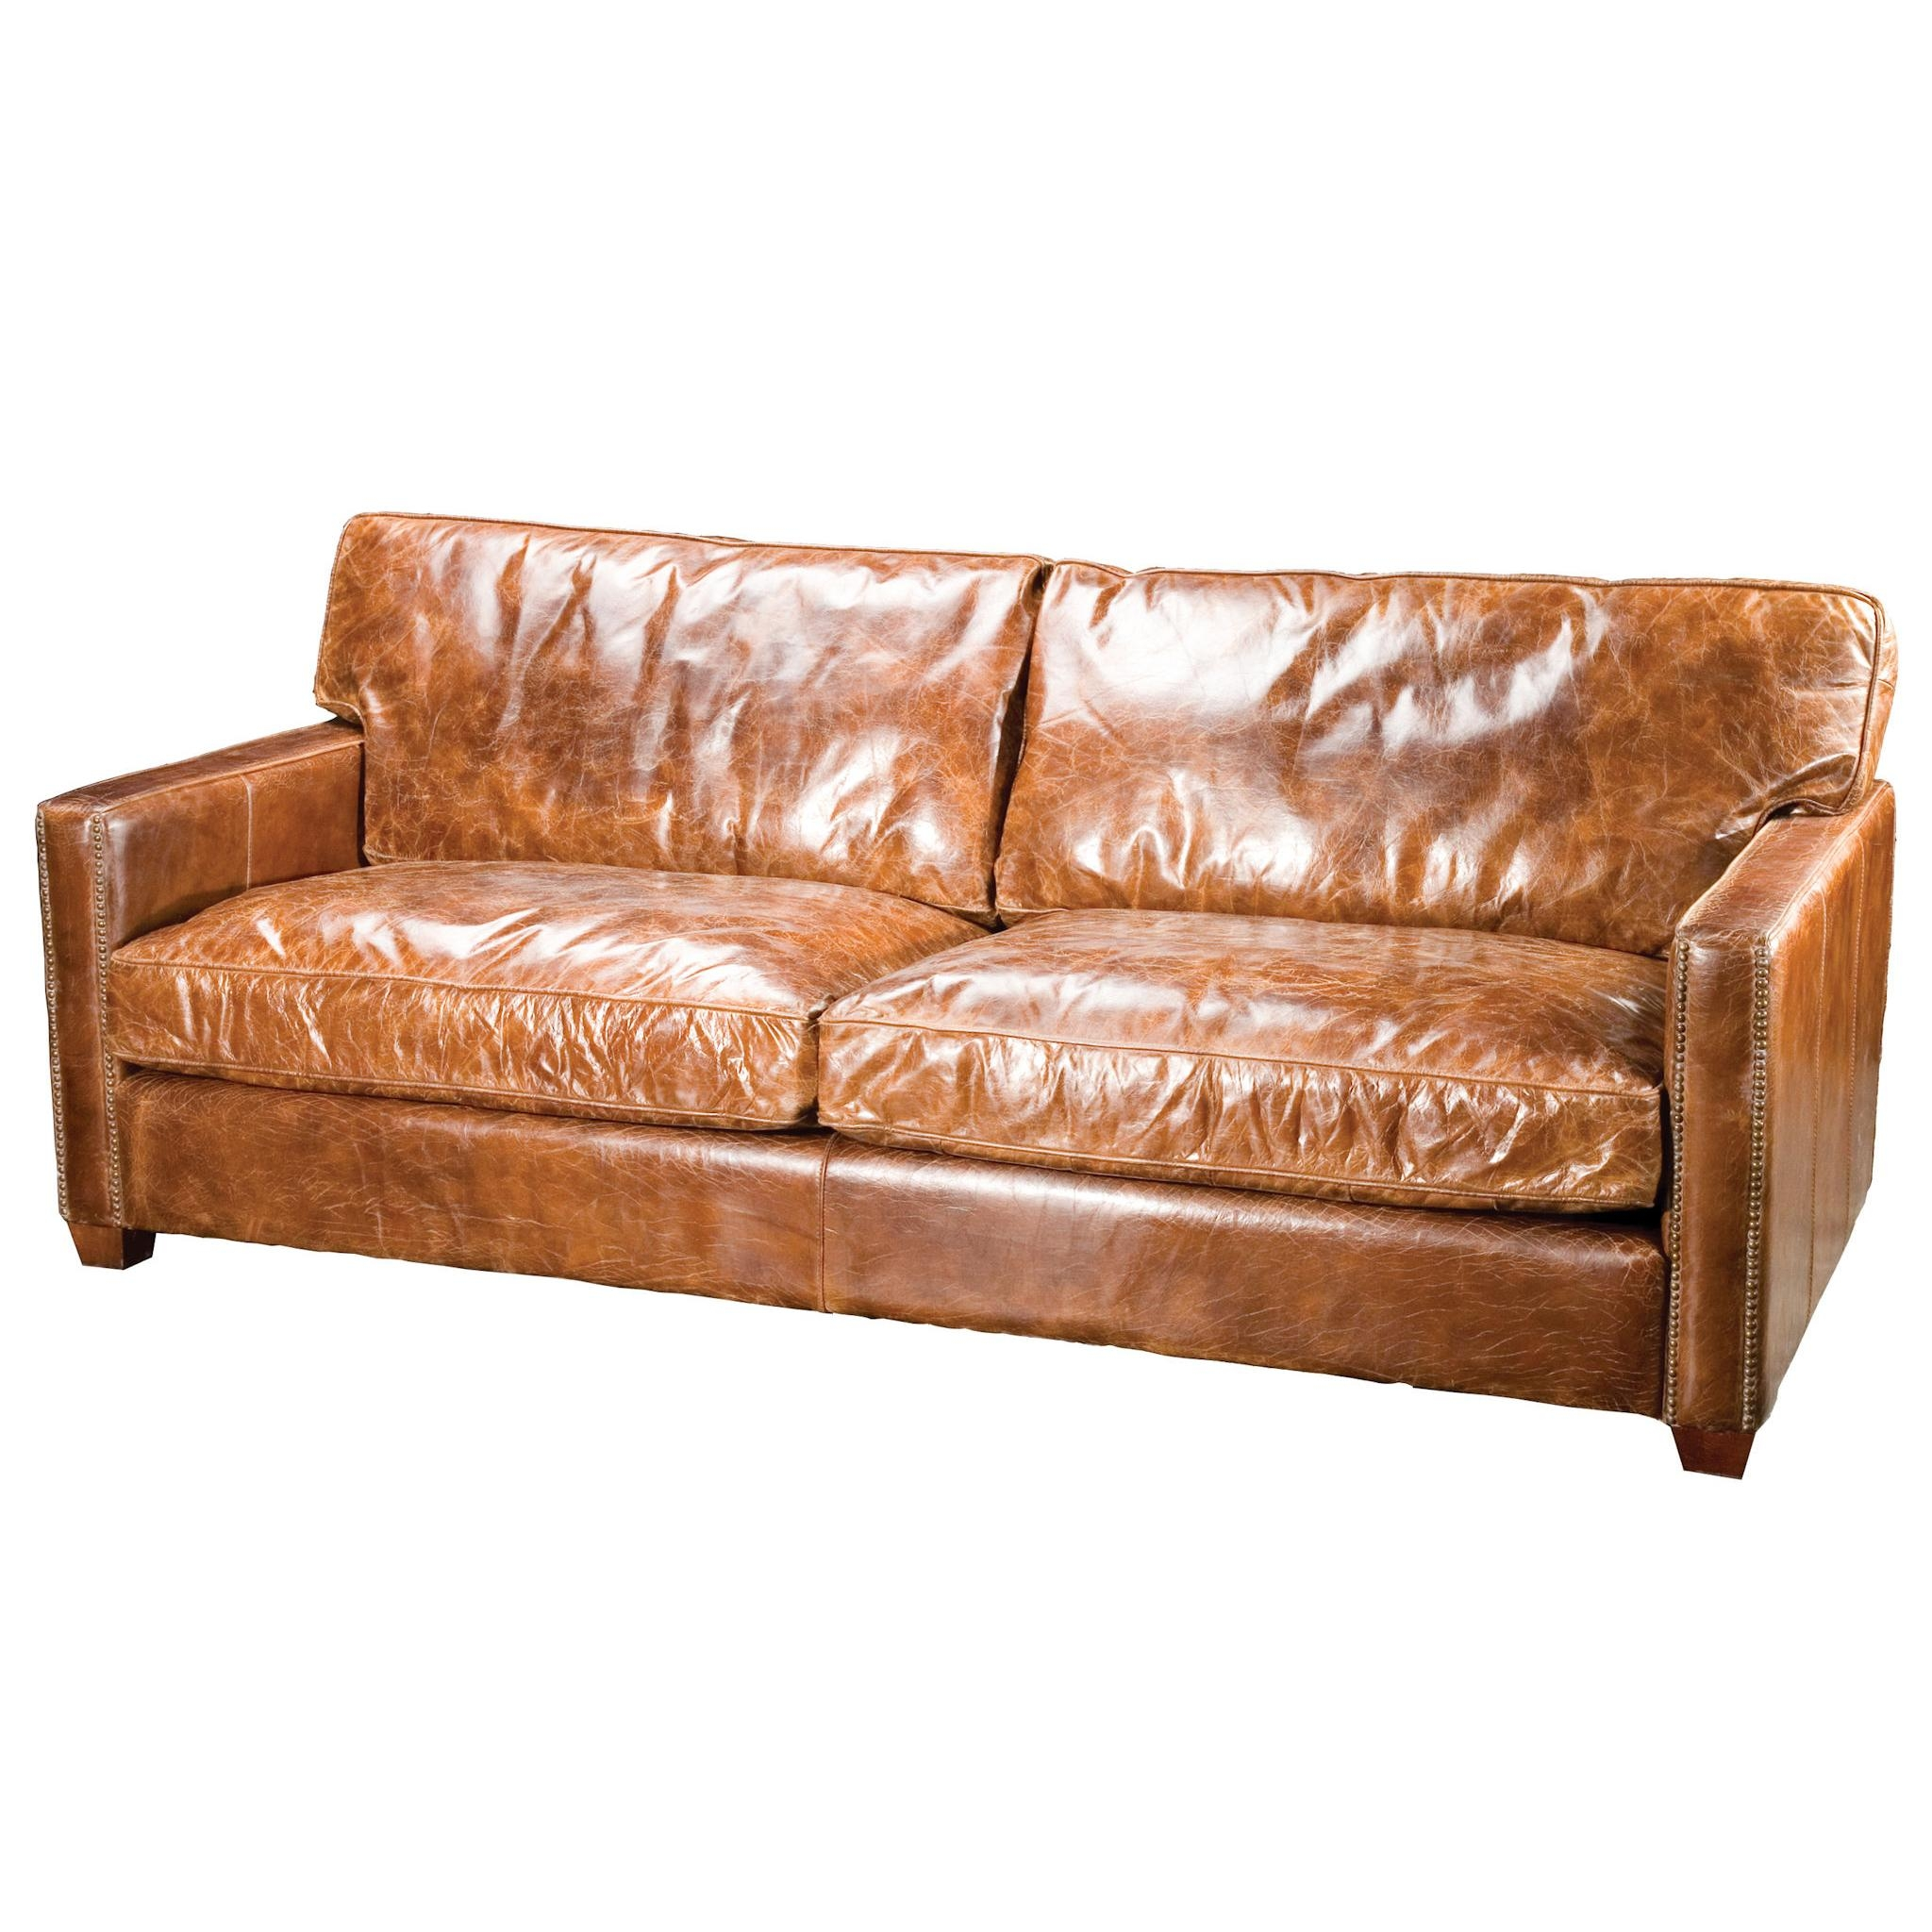 Full Grain Leather Sofas: 20 Collection Of Full Grain Leather Sofas